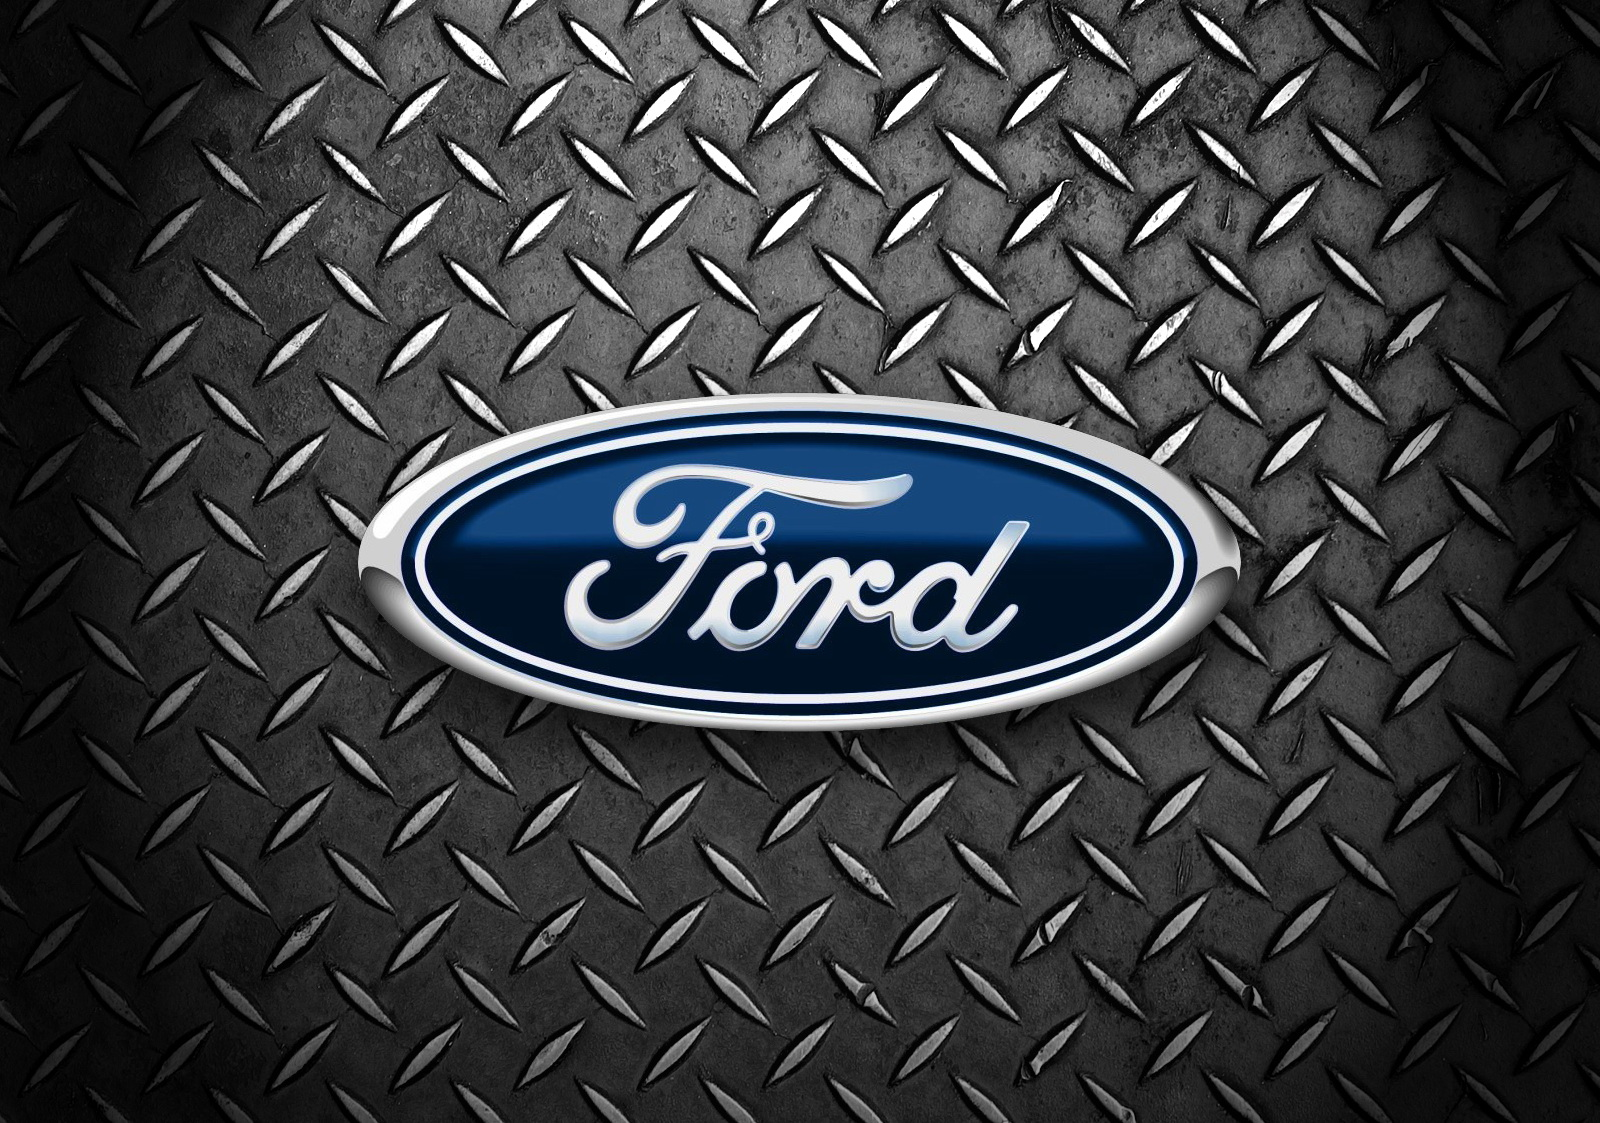 Ford Logo, Ford Car Symbol Meaning And History